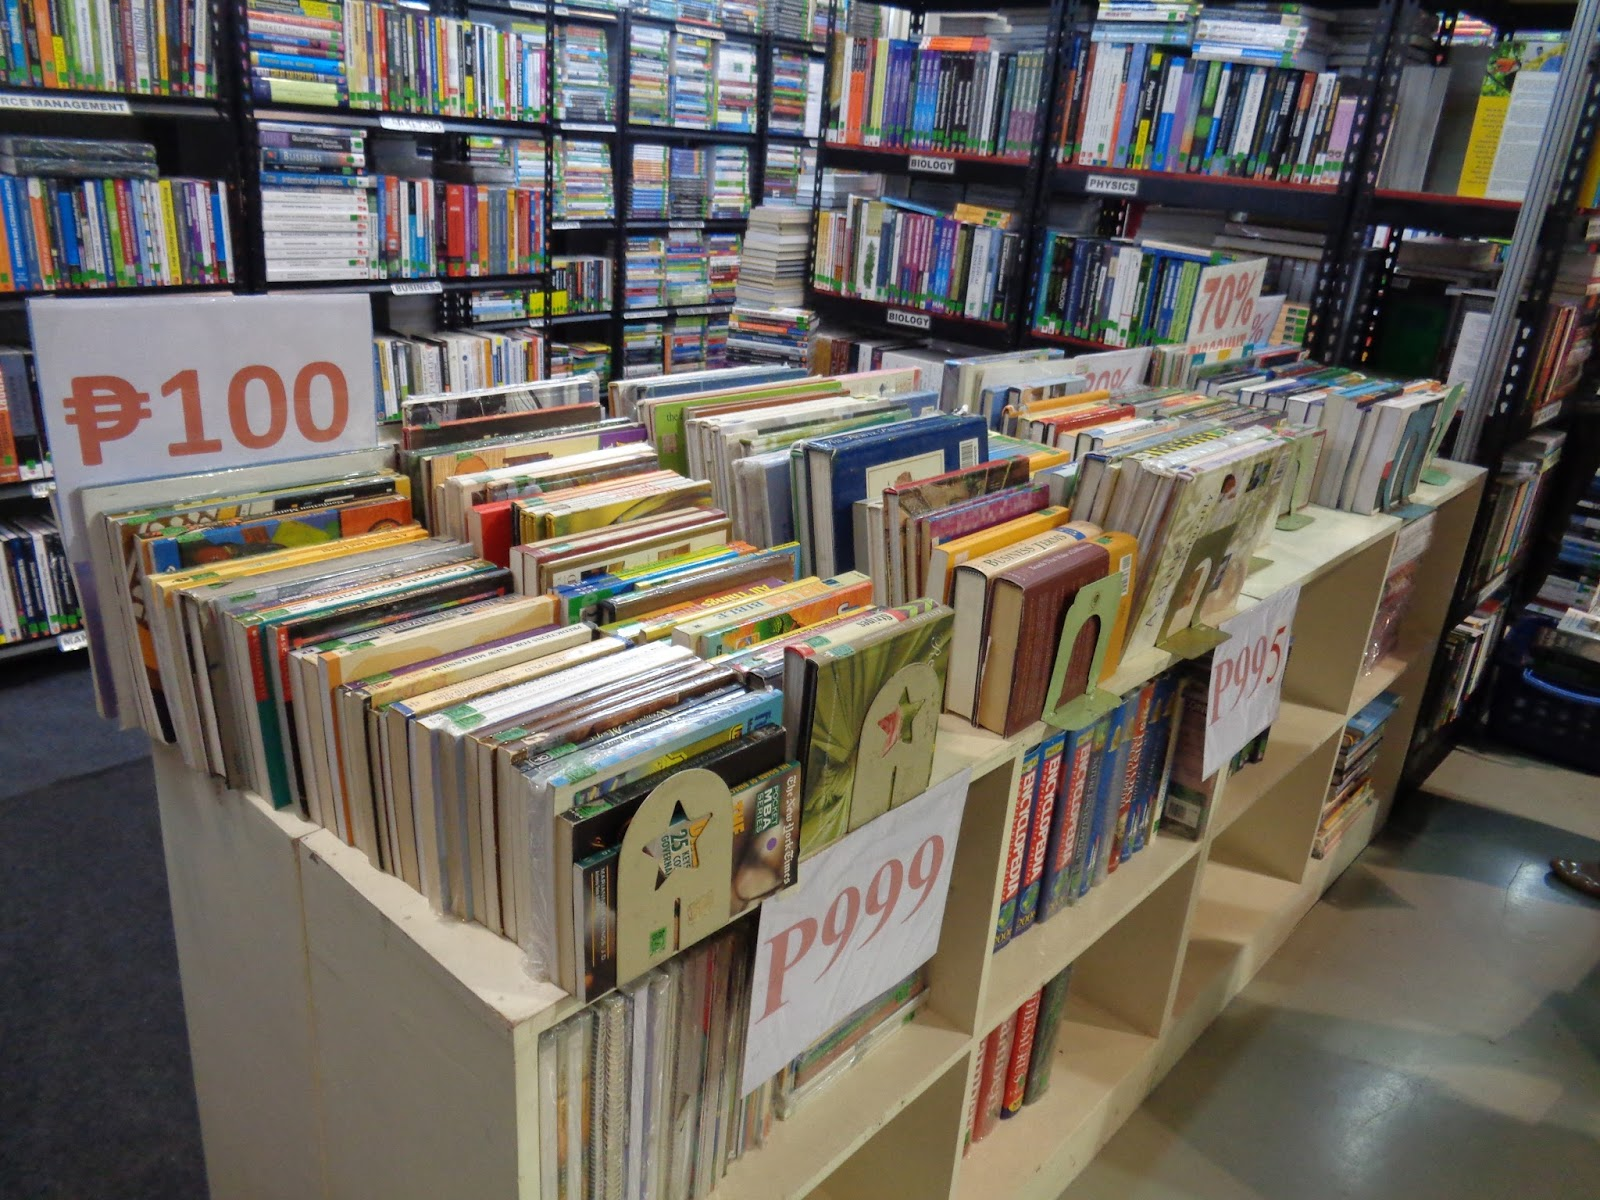 There Are Still Books For Good Prices The Not So Religious People As Well Carried By Big Names Like National Bookstore And Fully Booked